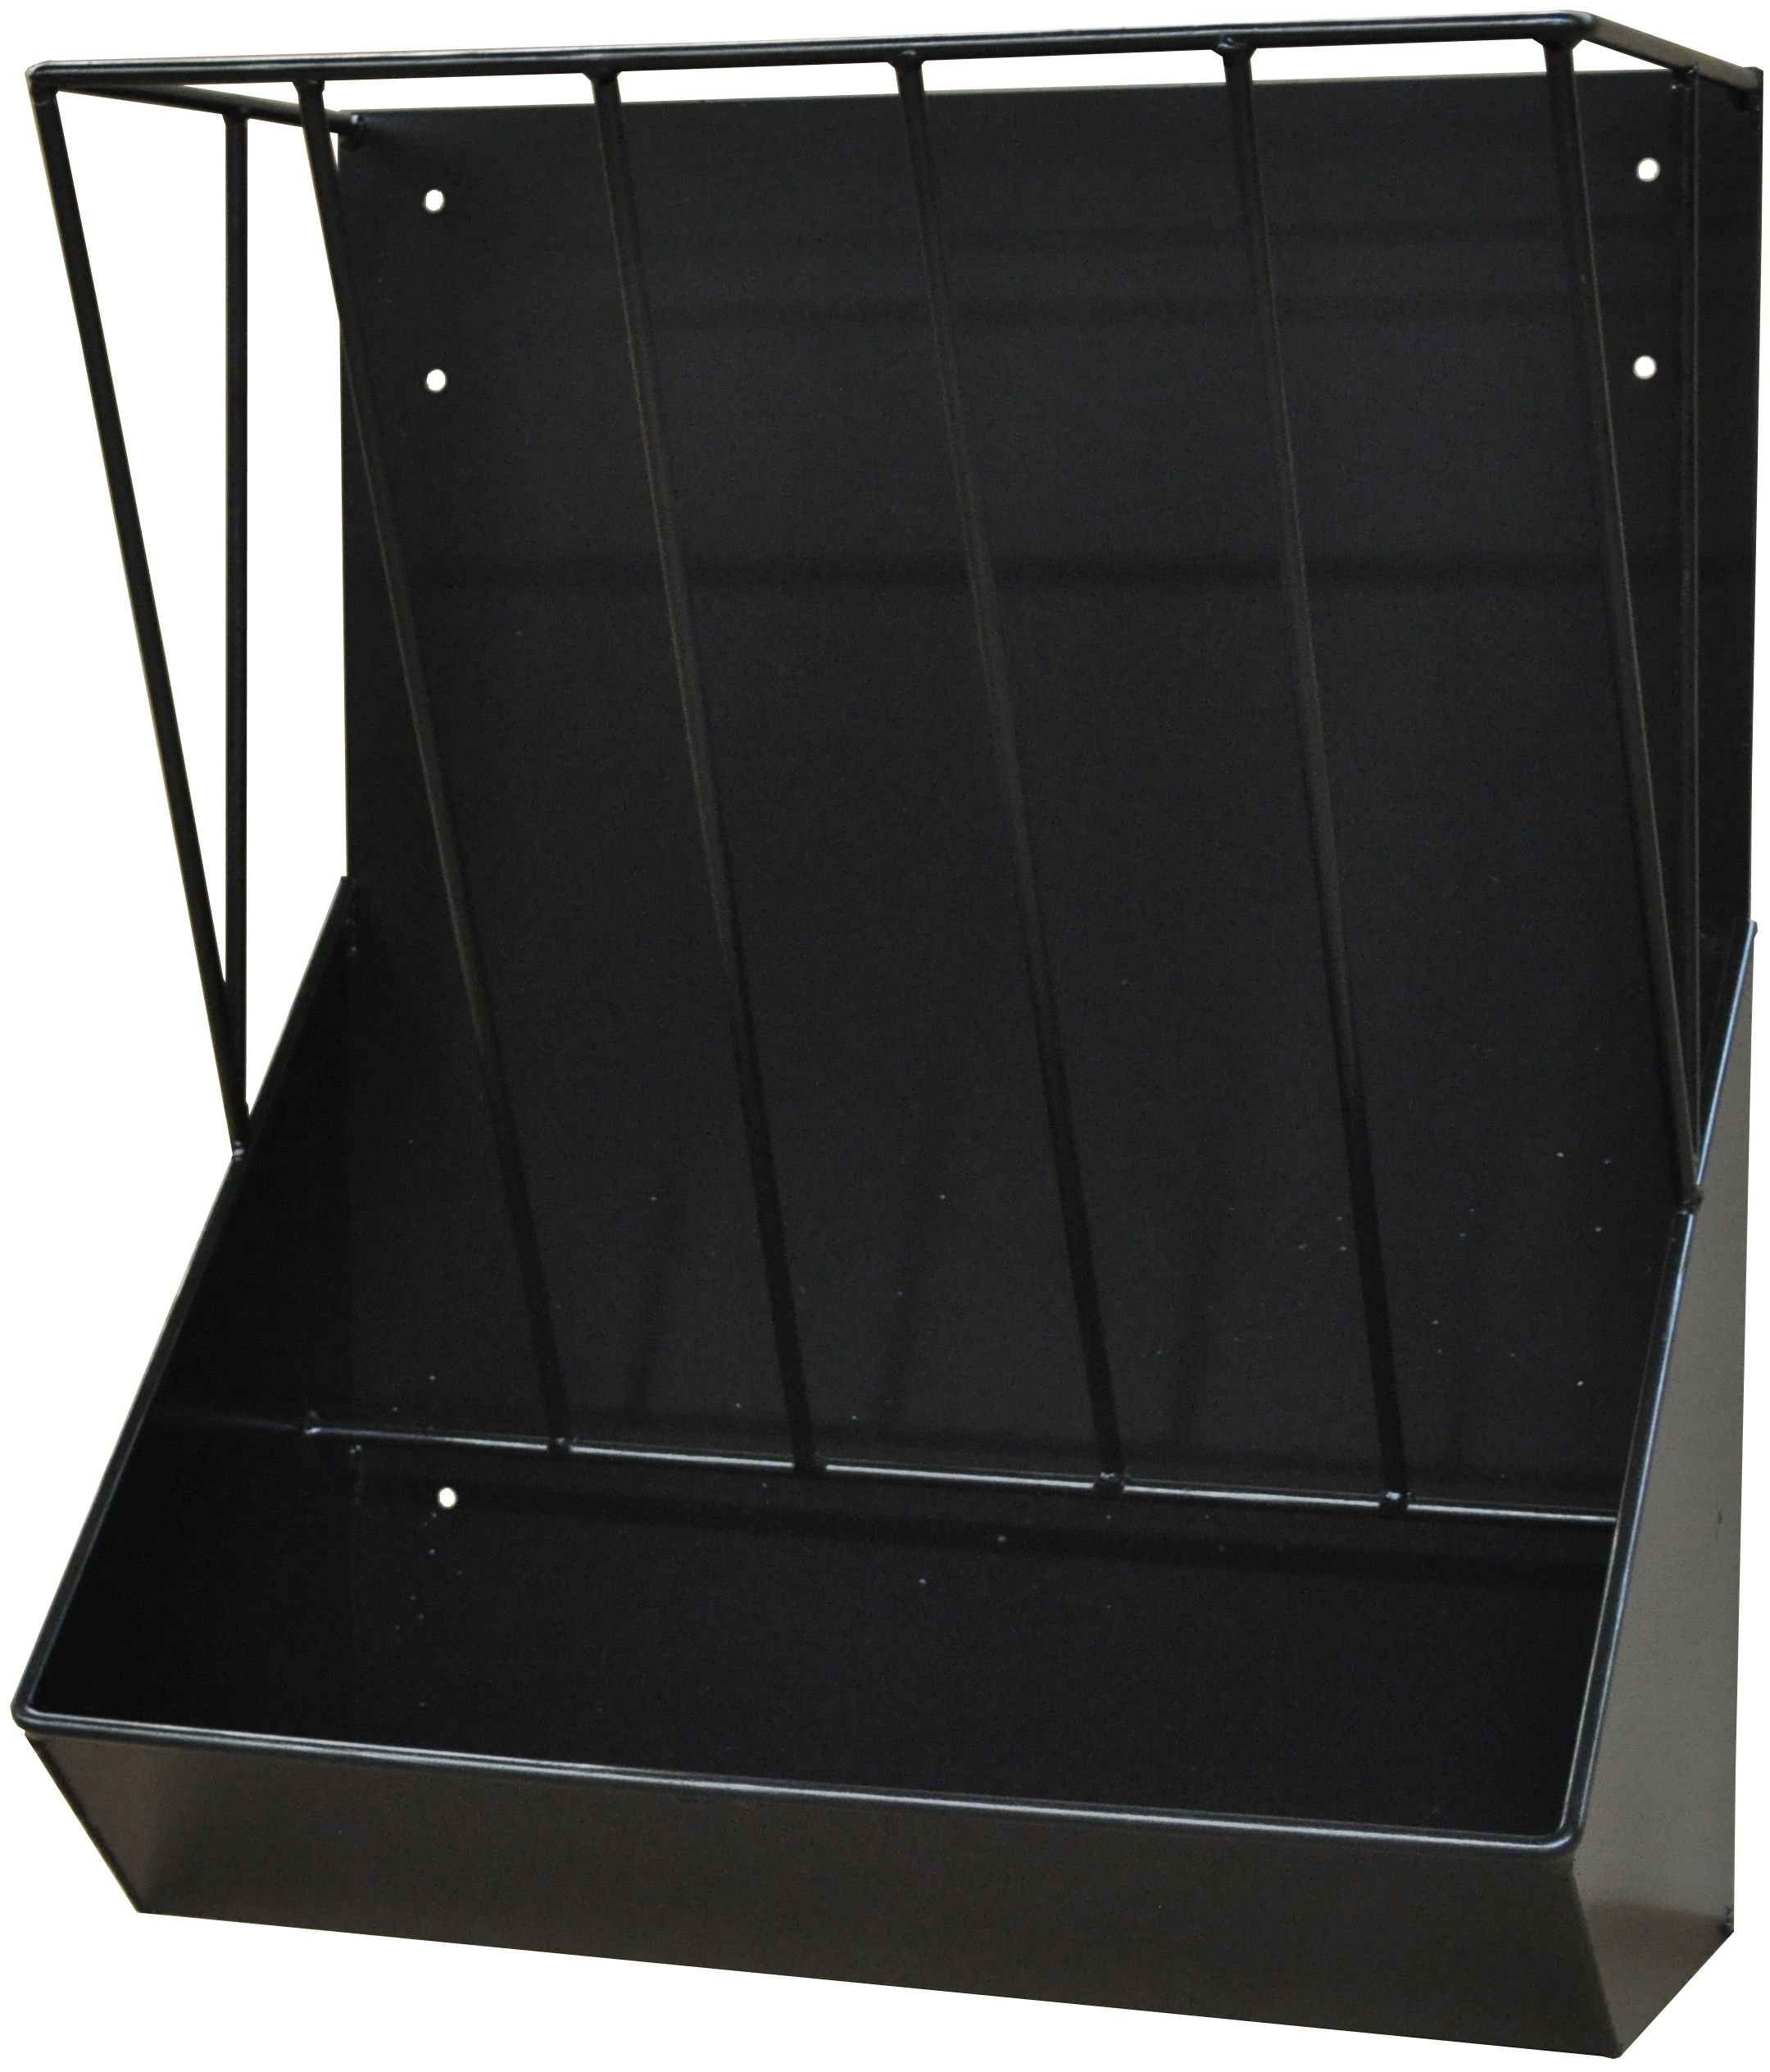 Combination hay and grain horse feeder by Country Manufacturing (Image #1)